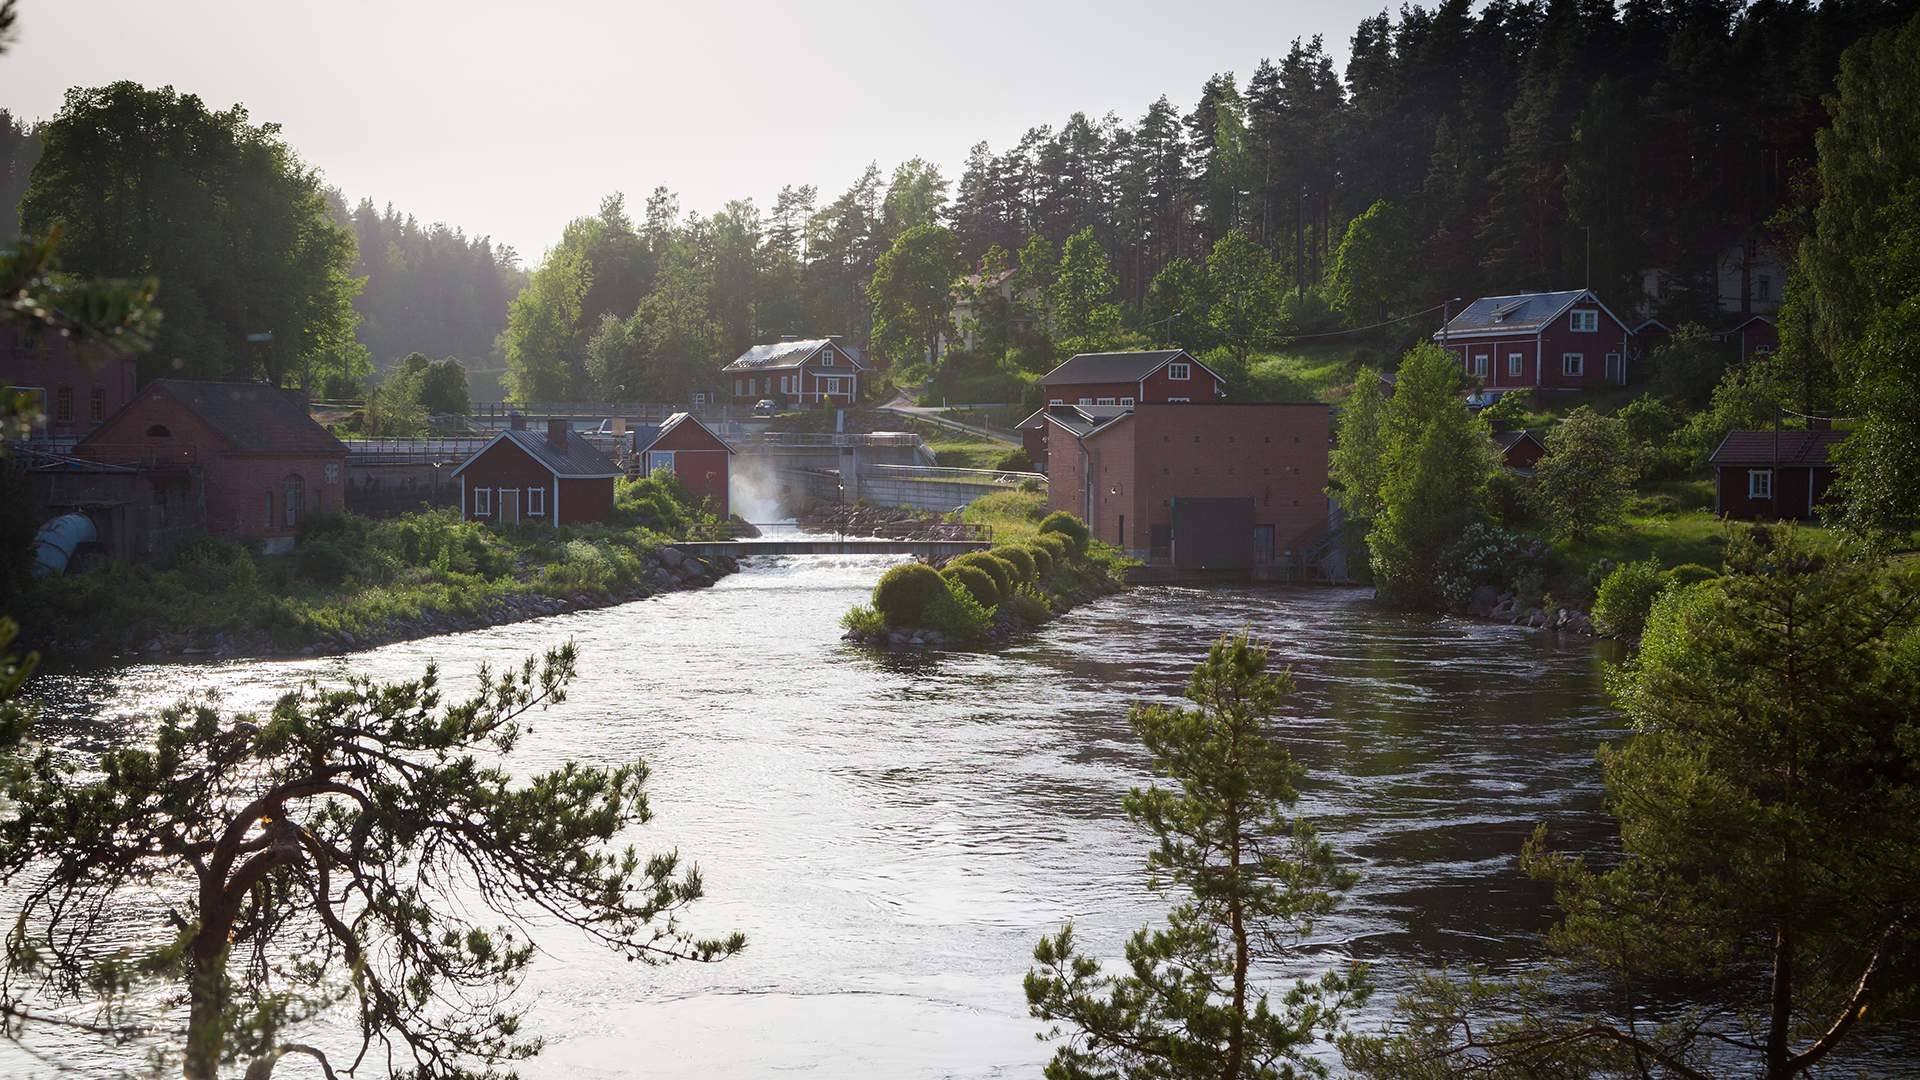 Stories by the idyllic Verla rapids